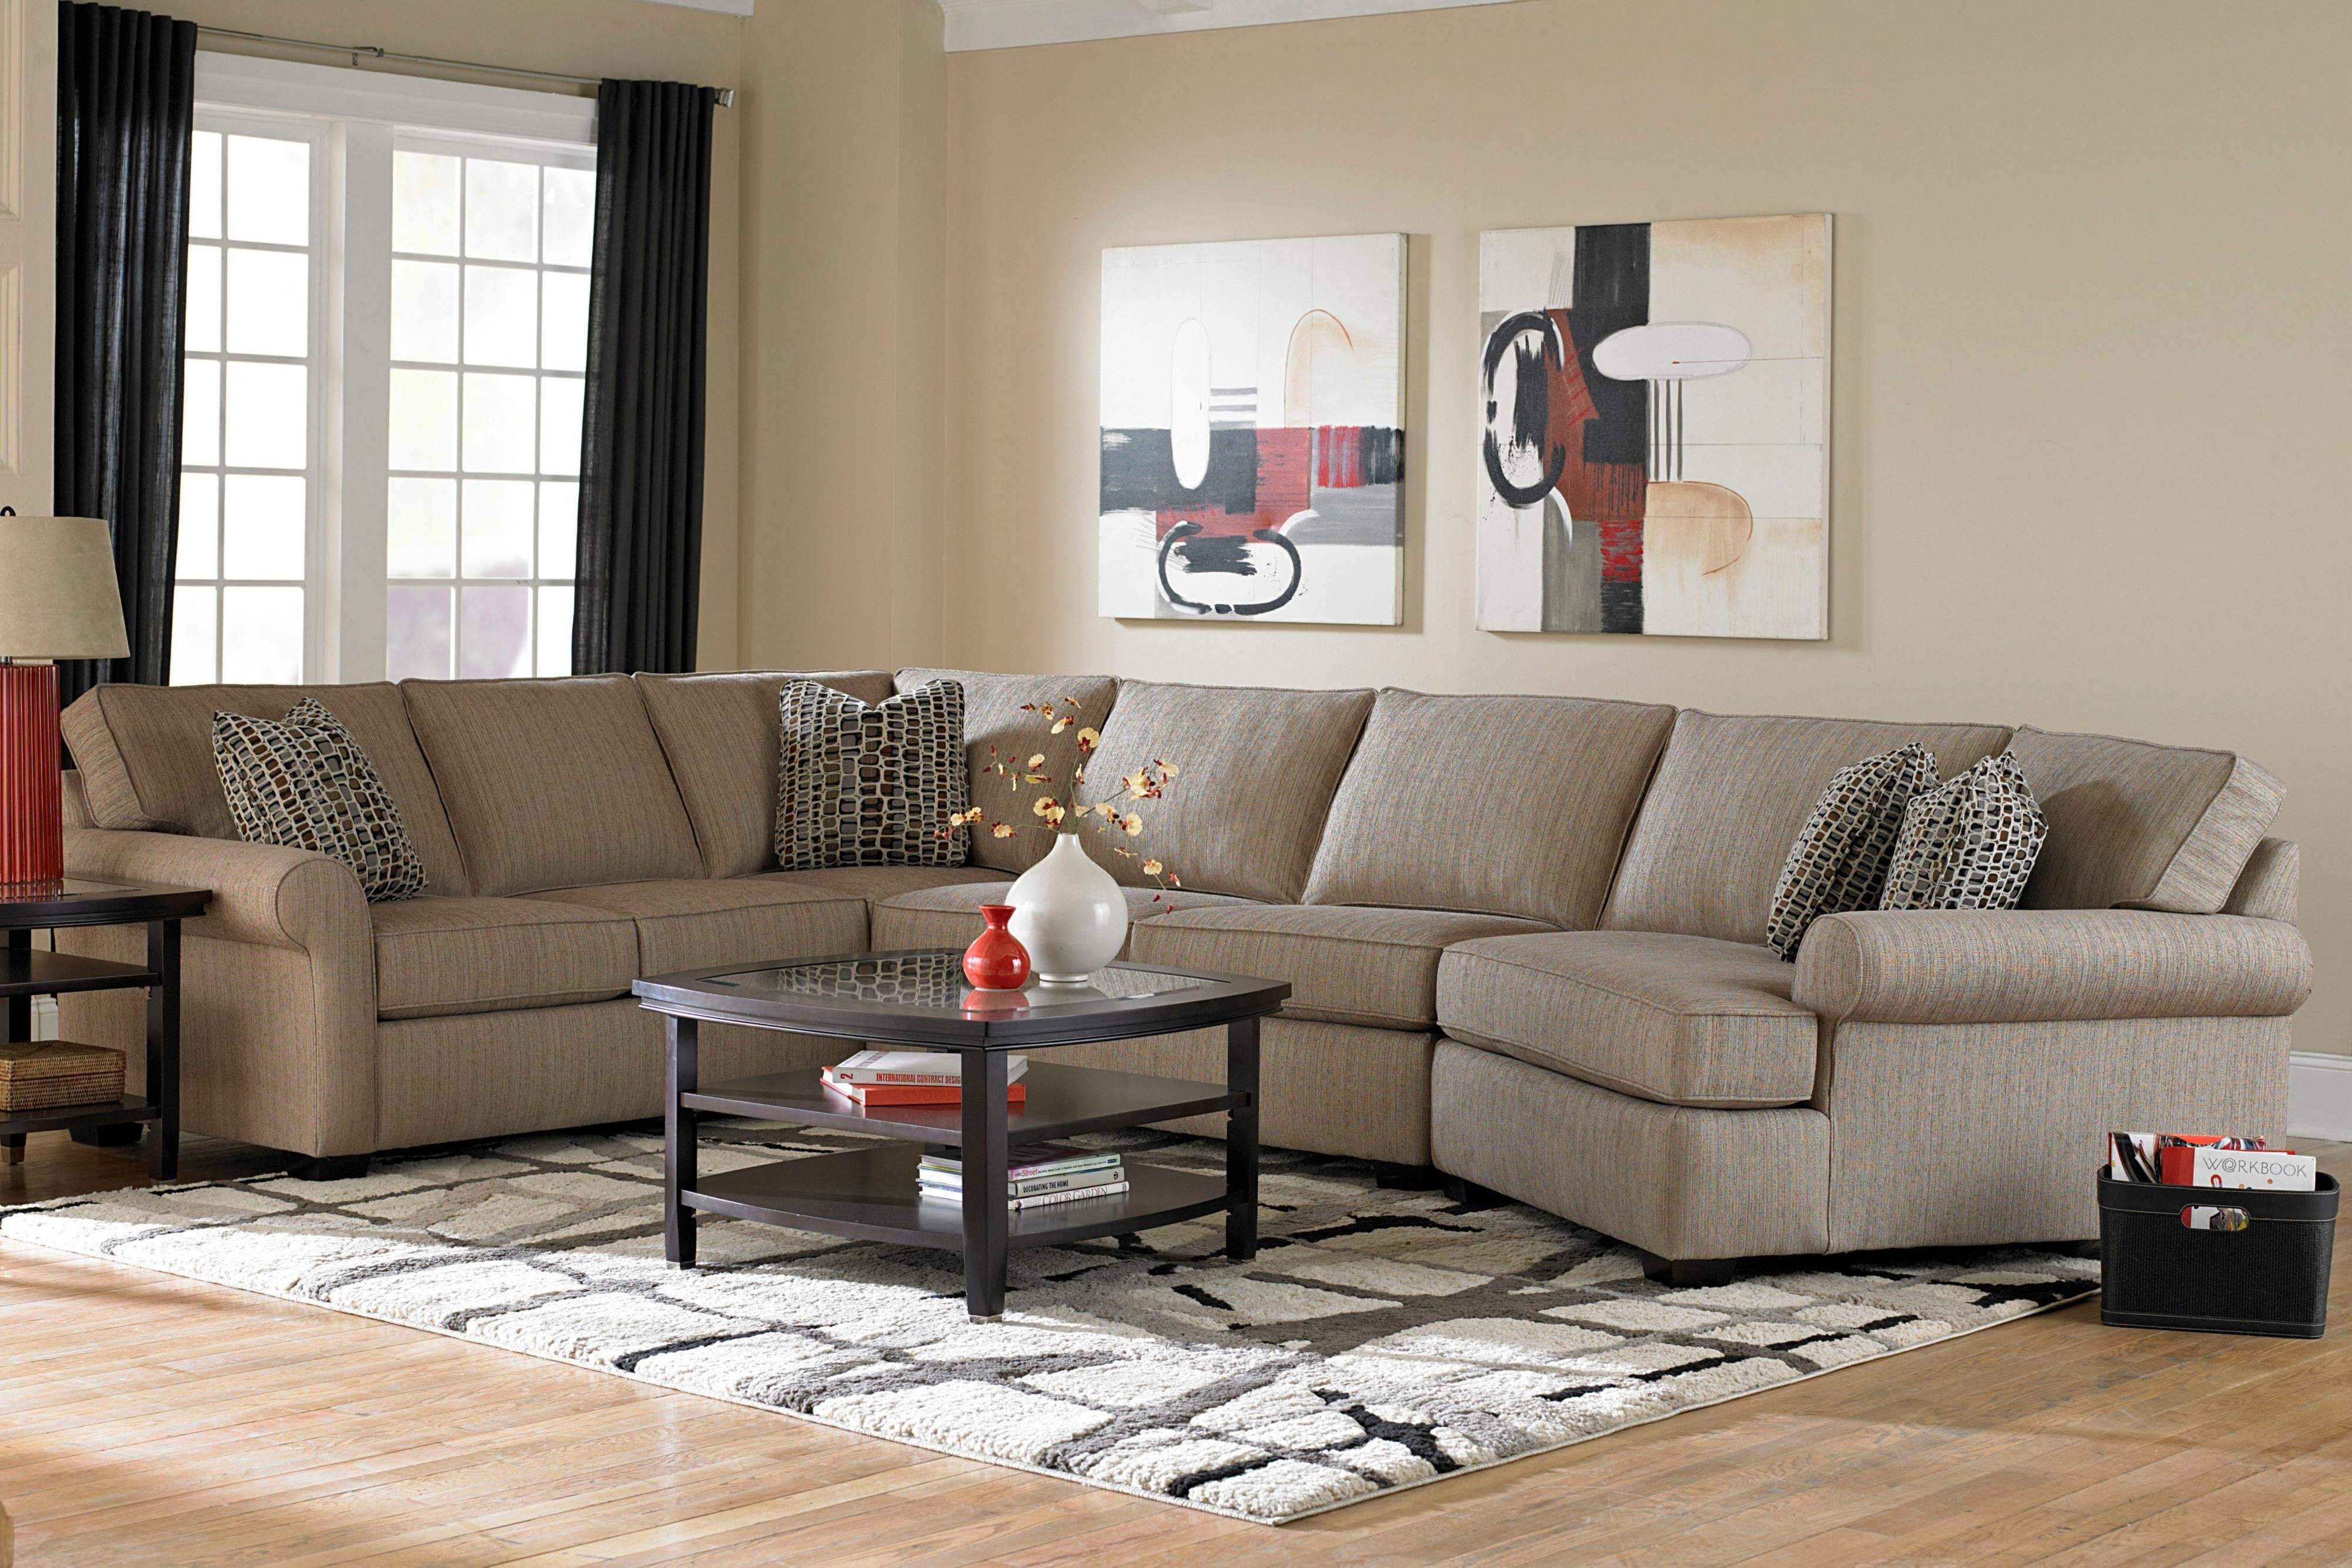 Broyhill Furniture Ethan Transitional Sectional Sofa With Right Inside Sectional Sofas At Broyhill (Image 2 of 10)